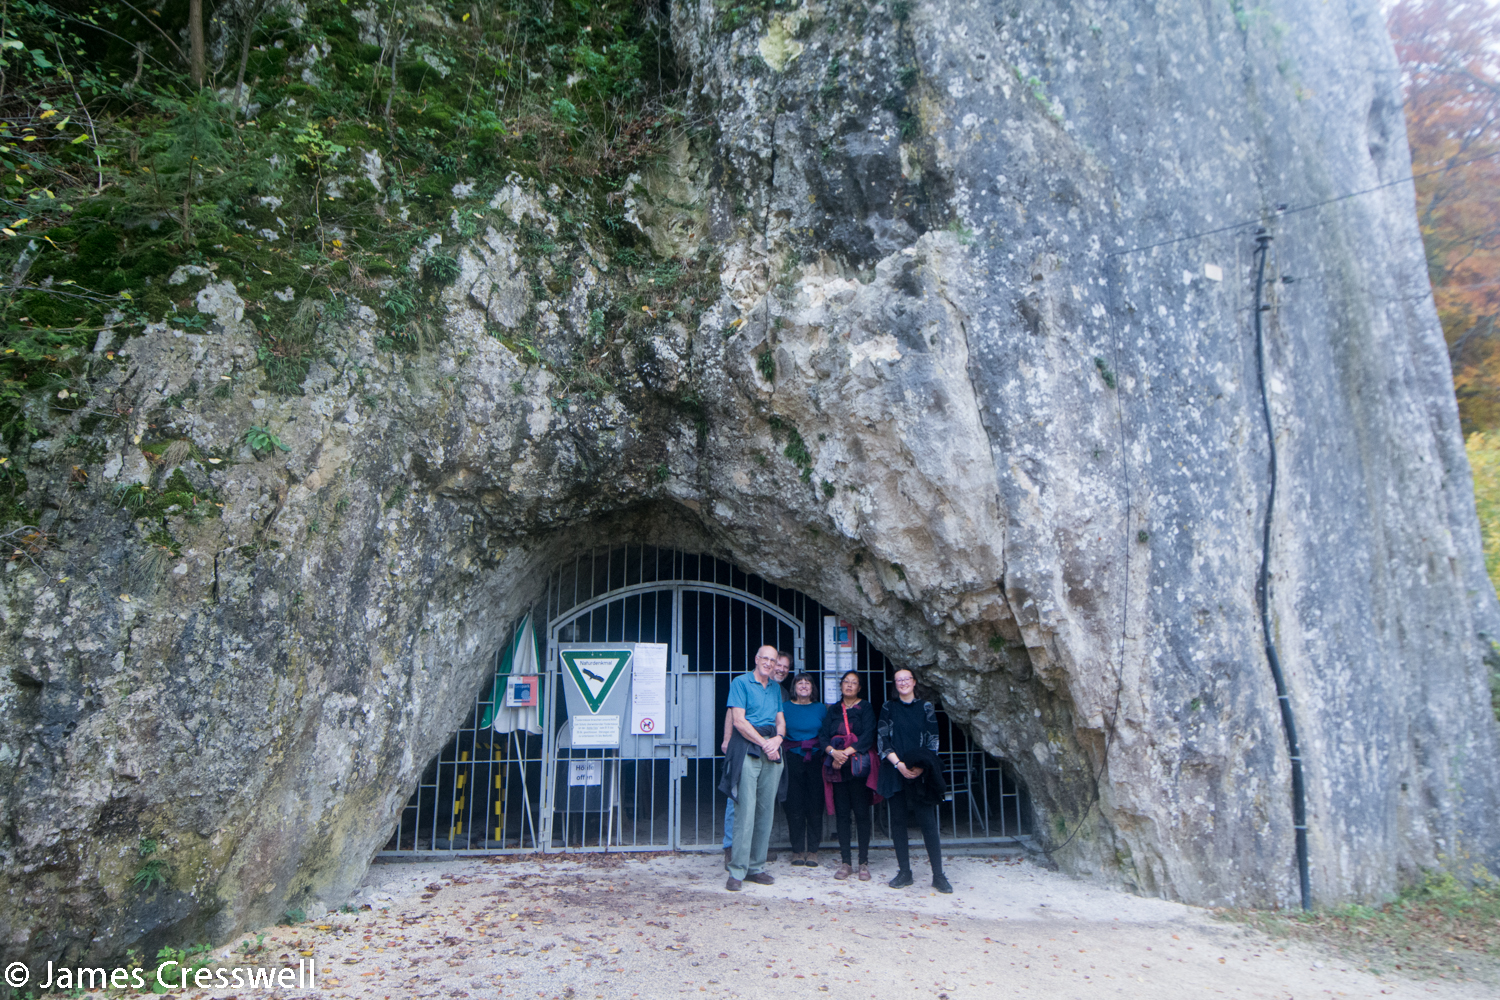 Group outside barred cave entrance